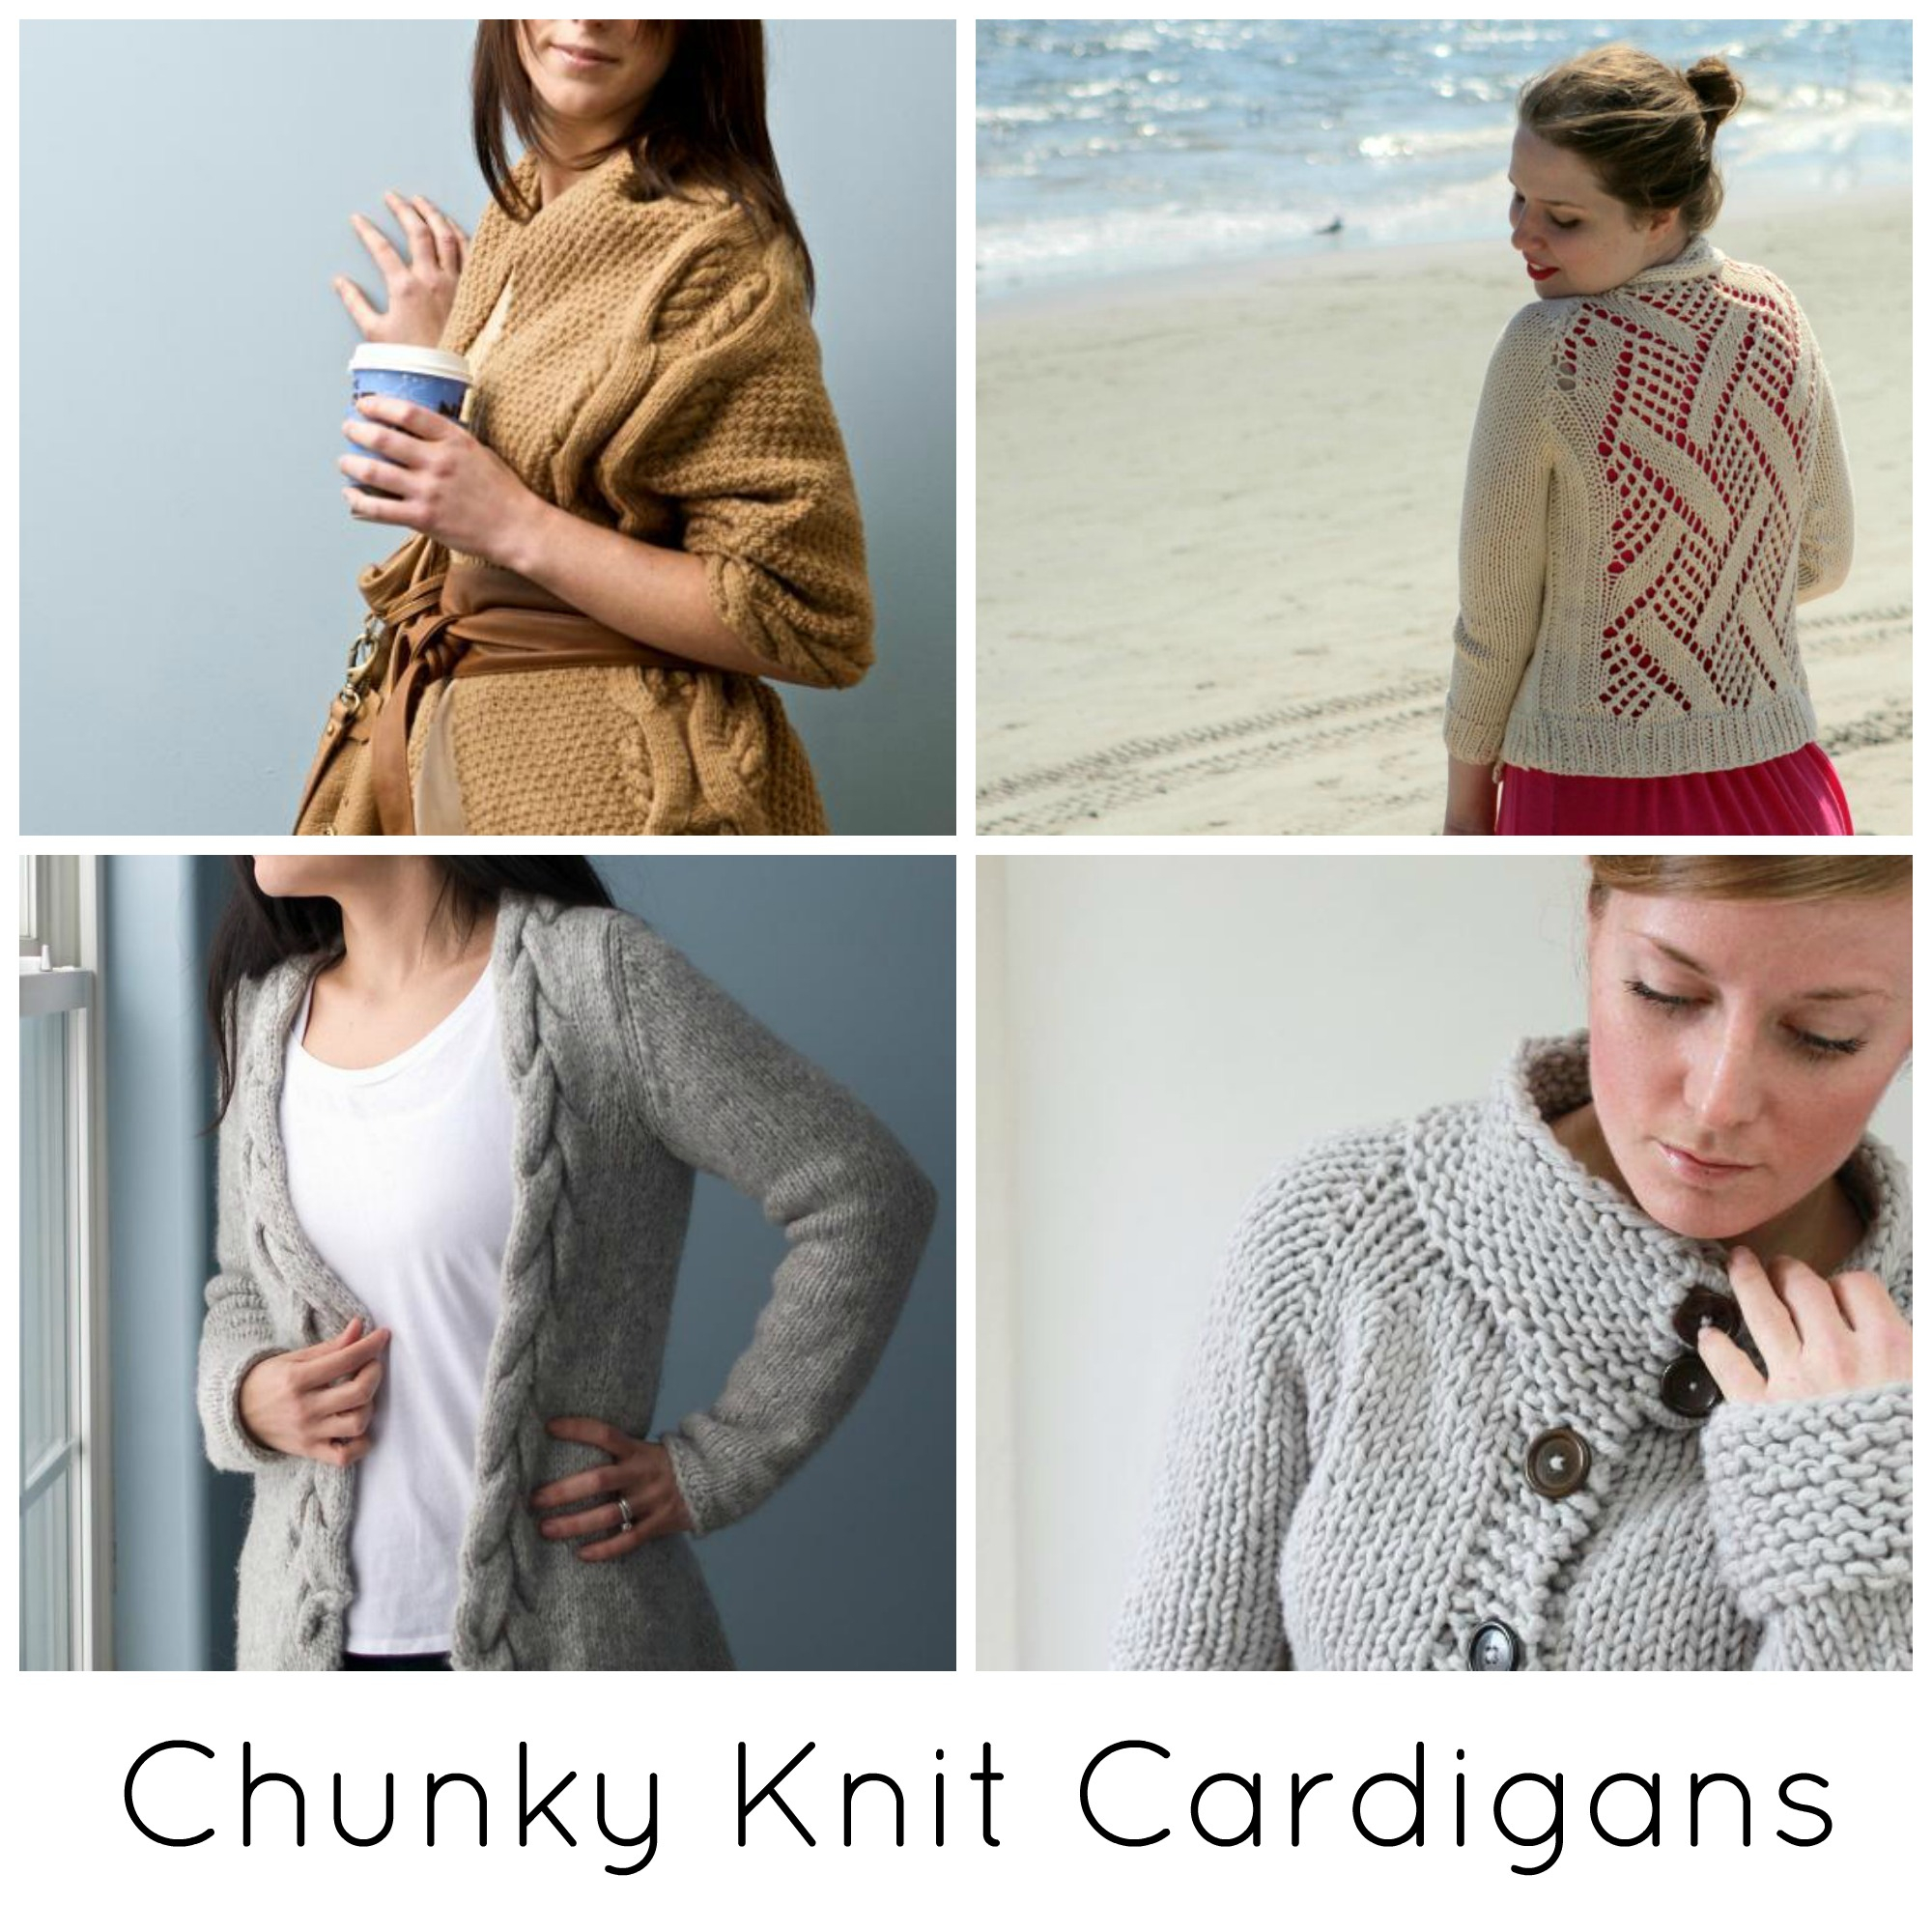 Free Knitting Patterns For Sweater Coats The Coziest Chunky Knit Cardigan Patterns Ever